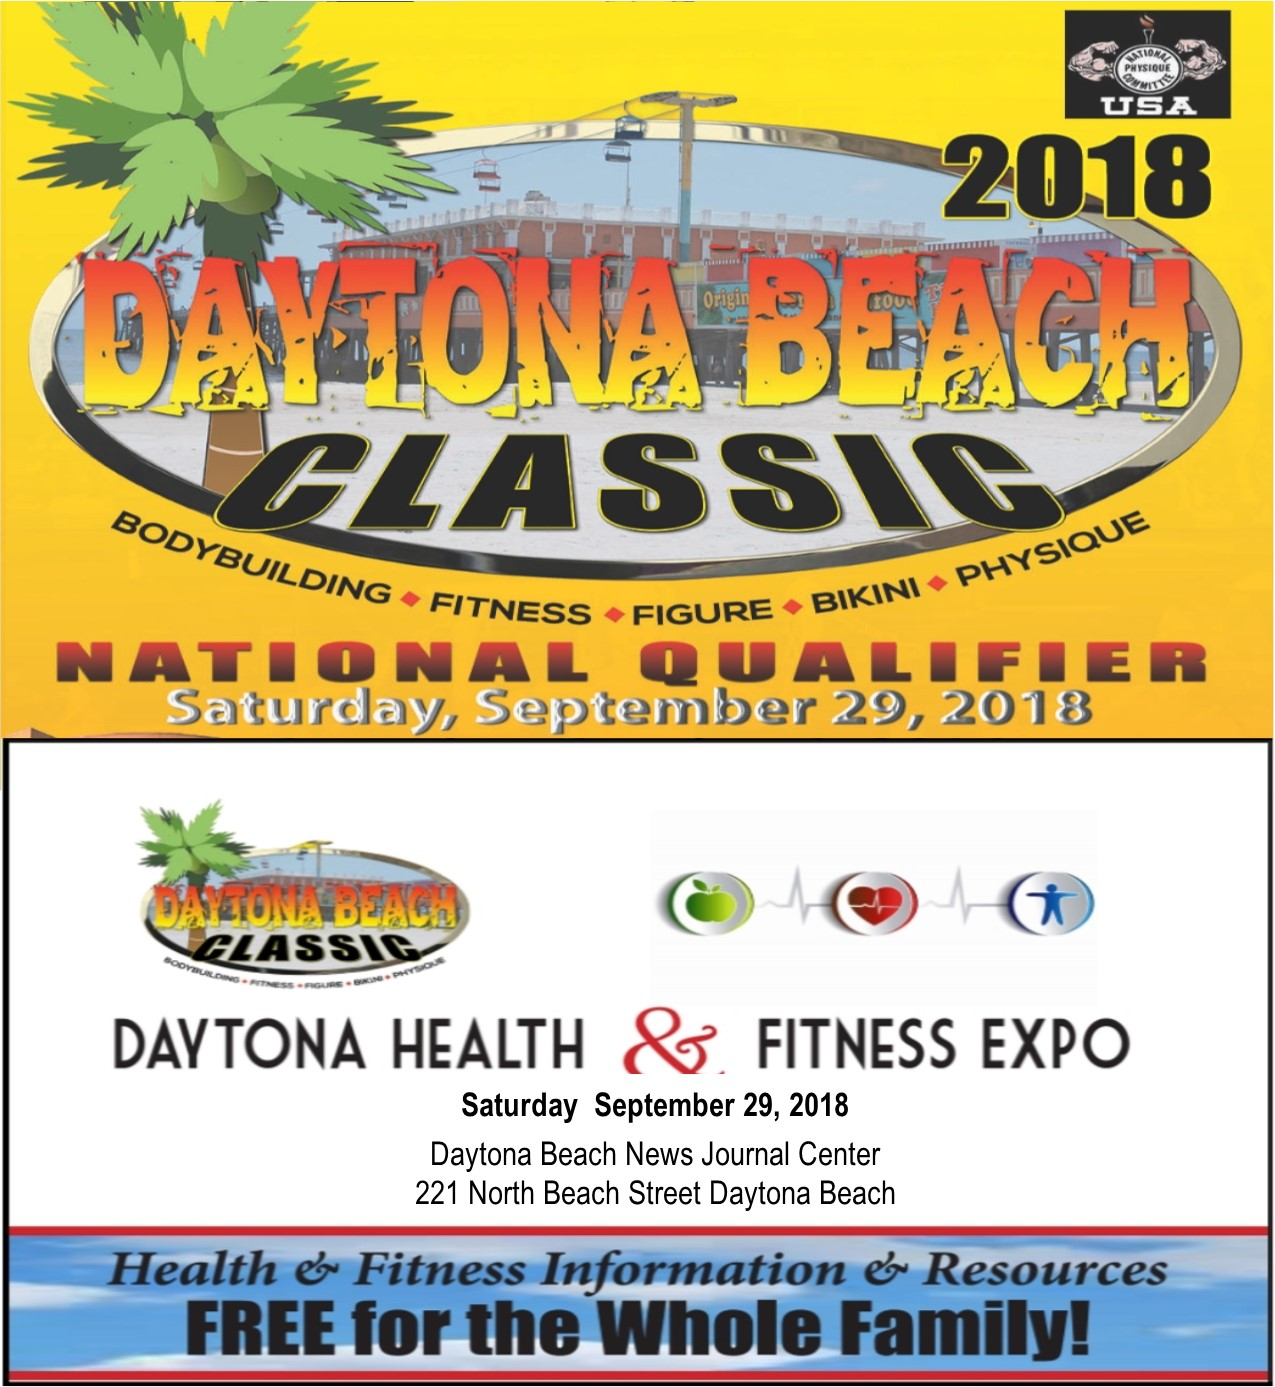 DAYTONA BEACH CLASSIC AND EXPO POSTER